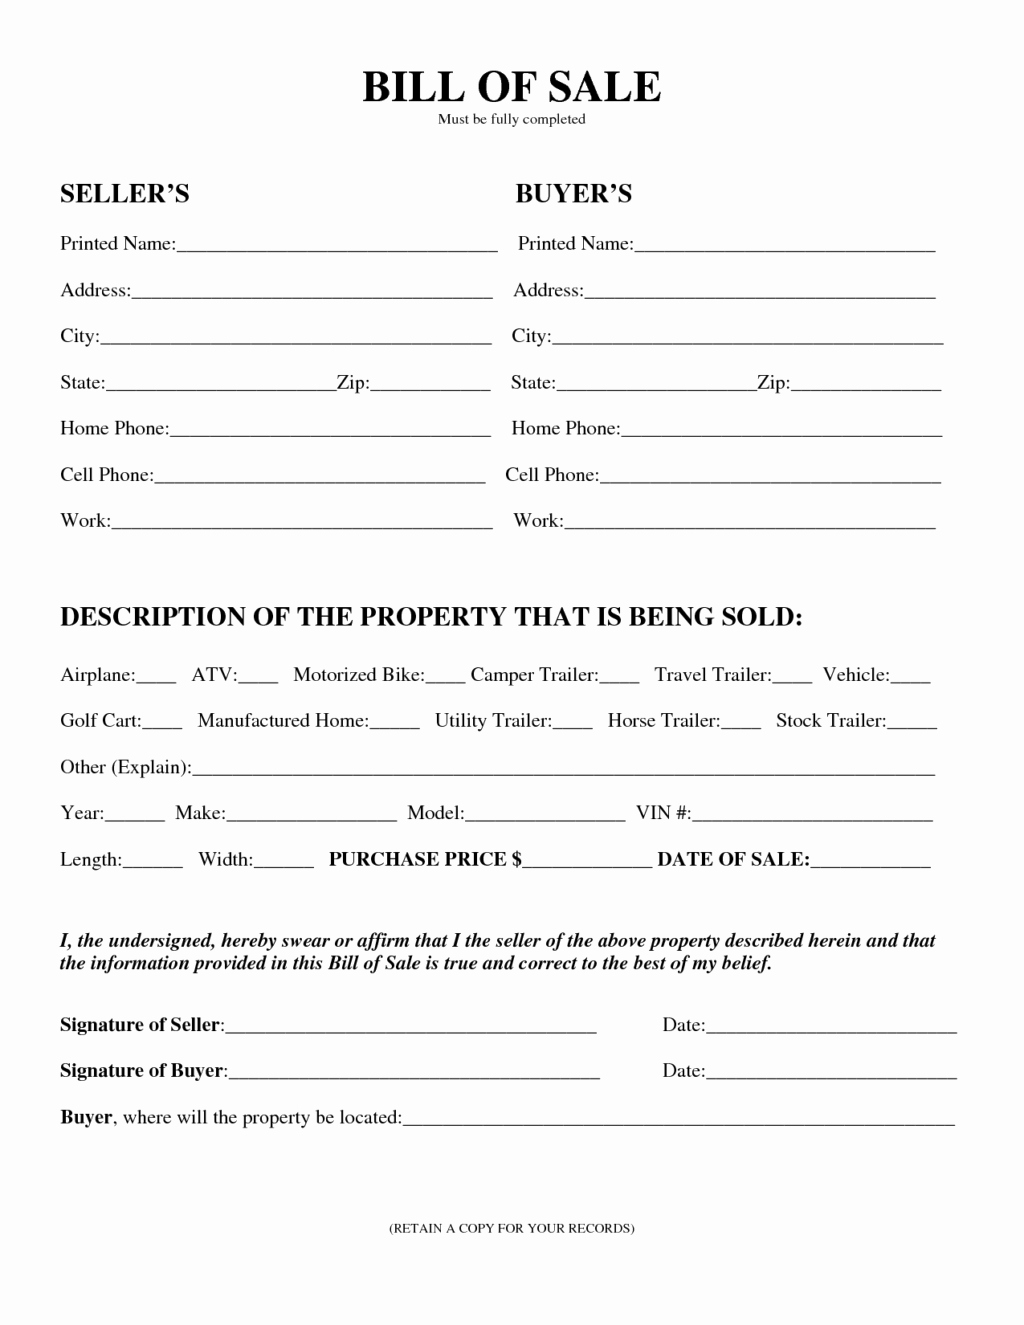 Editable General Bill Sale Template form for Selling